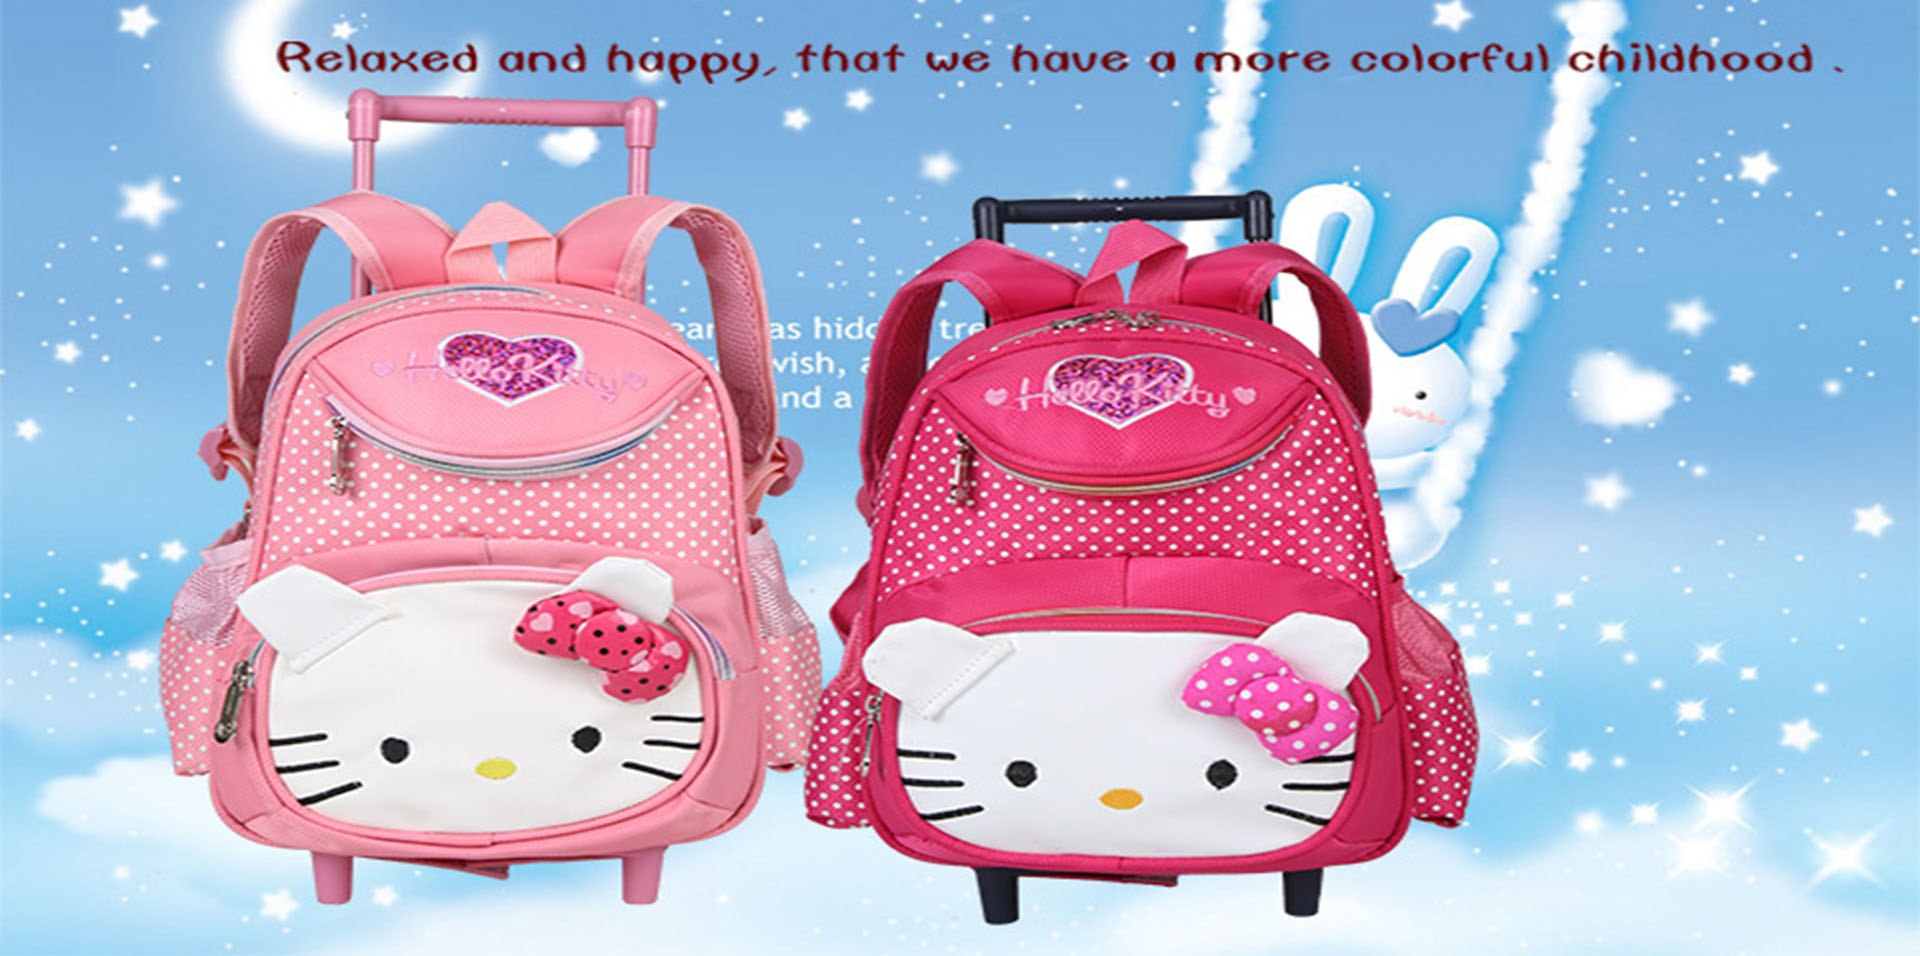 balo-keo-hello-kitty-1